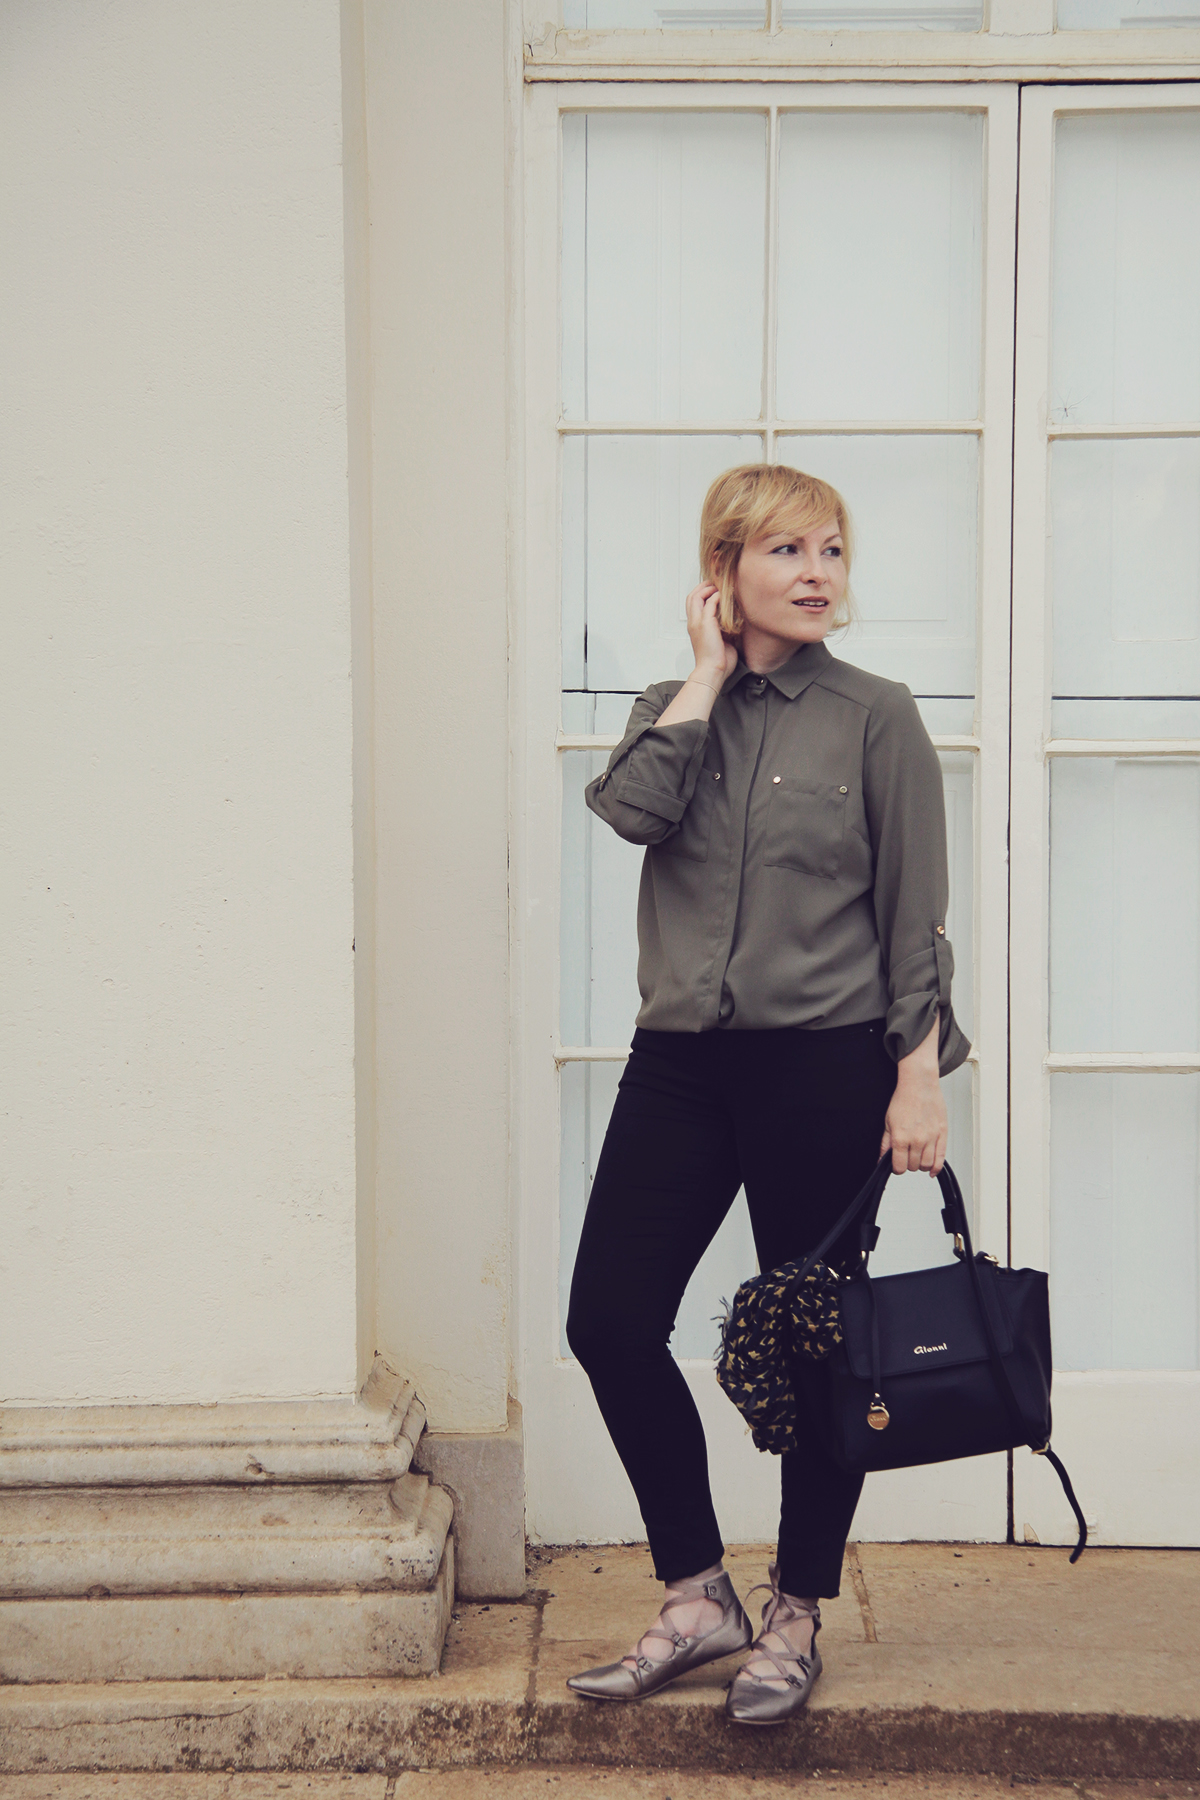 london-ballet-flats-and-jeans-with-green-shirt